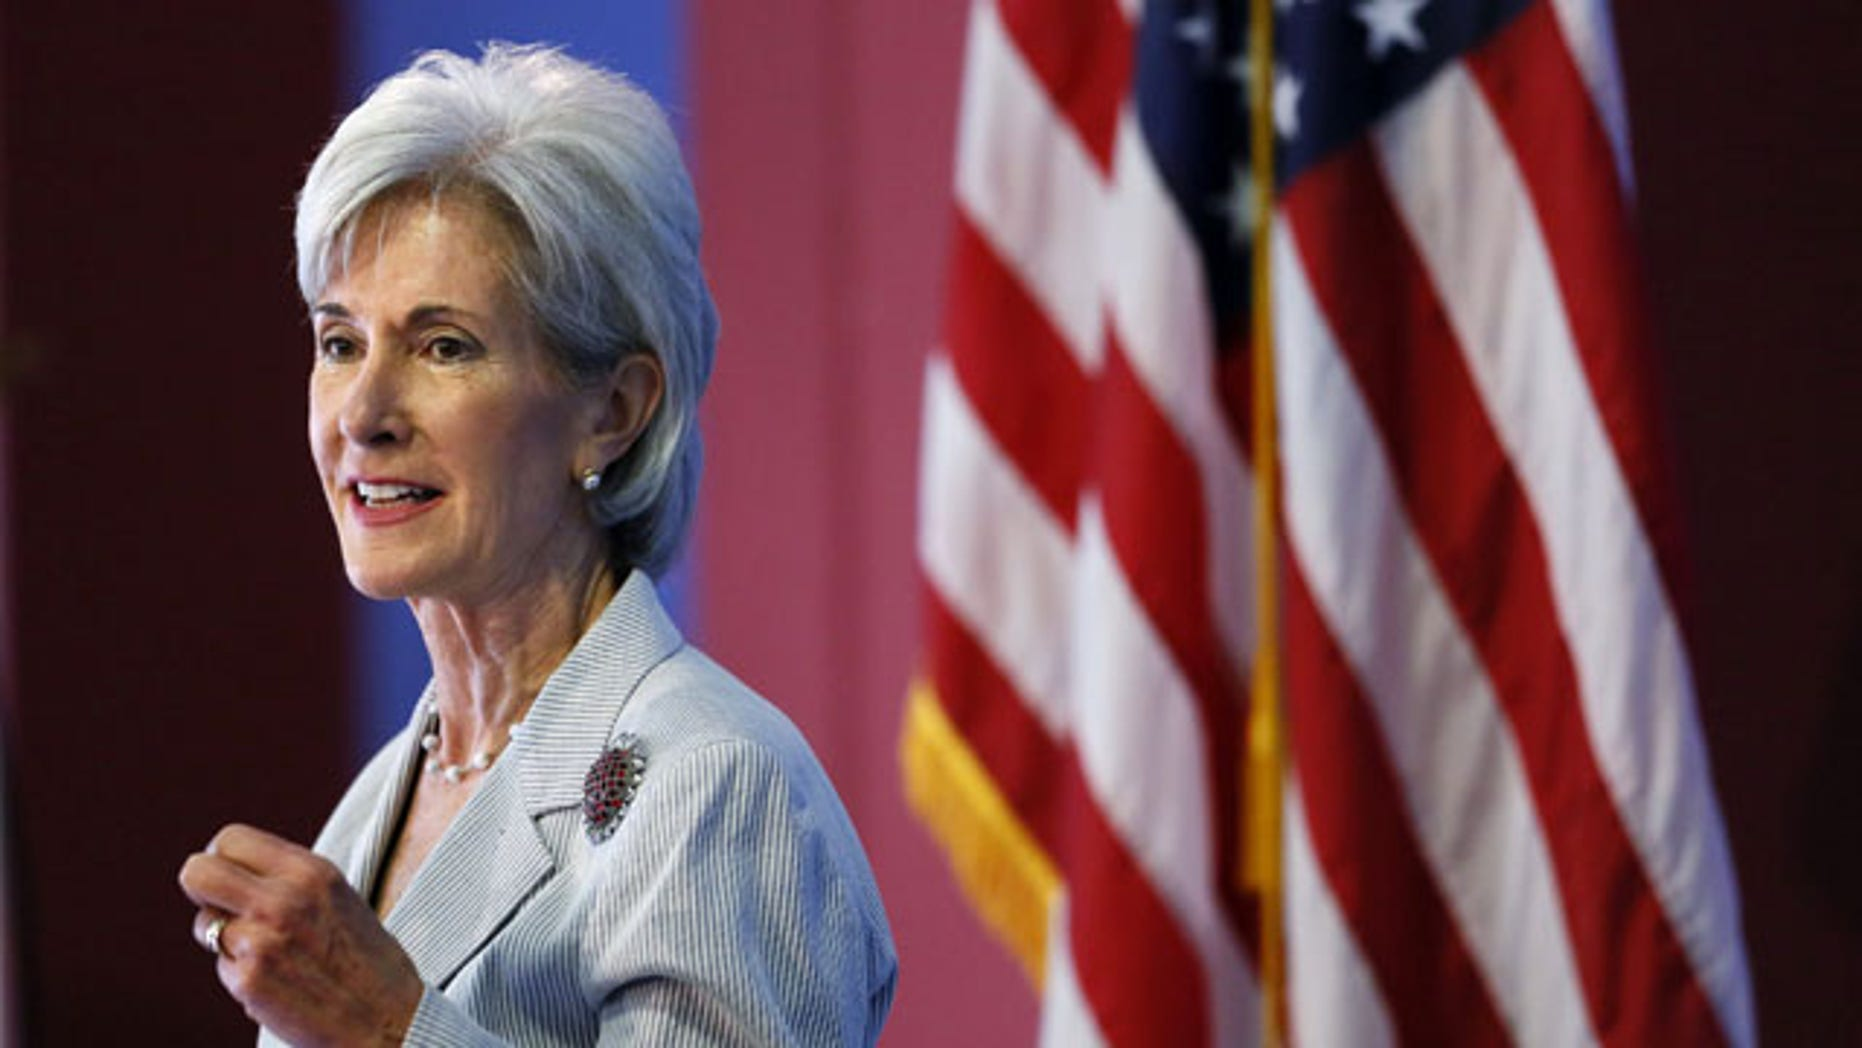 FILE - In this Aug. 22, 2013, file photo, Health and Human Services Secretary Kathleen Sebelius speaks during an event discussing the federal health care overhaul in Philadelphia. (AP Photo)